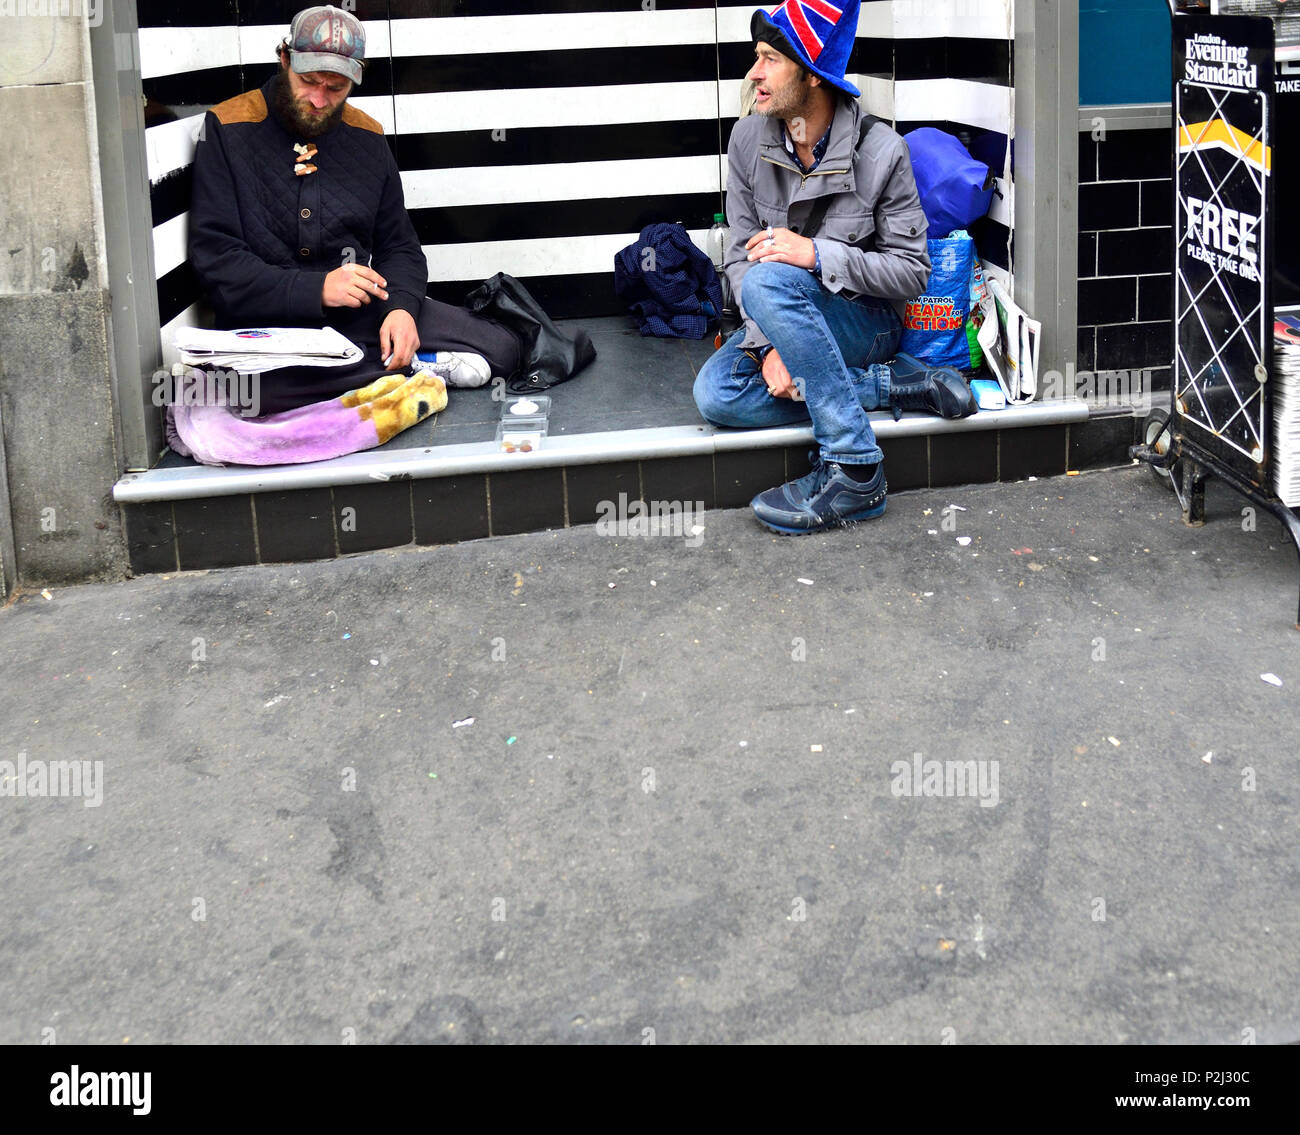 Two homeless men sitting in a doorway, the Strand, London, England, UK. Stock Photo